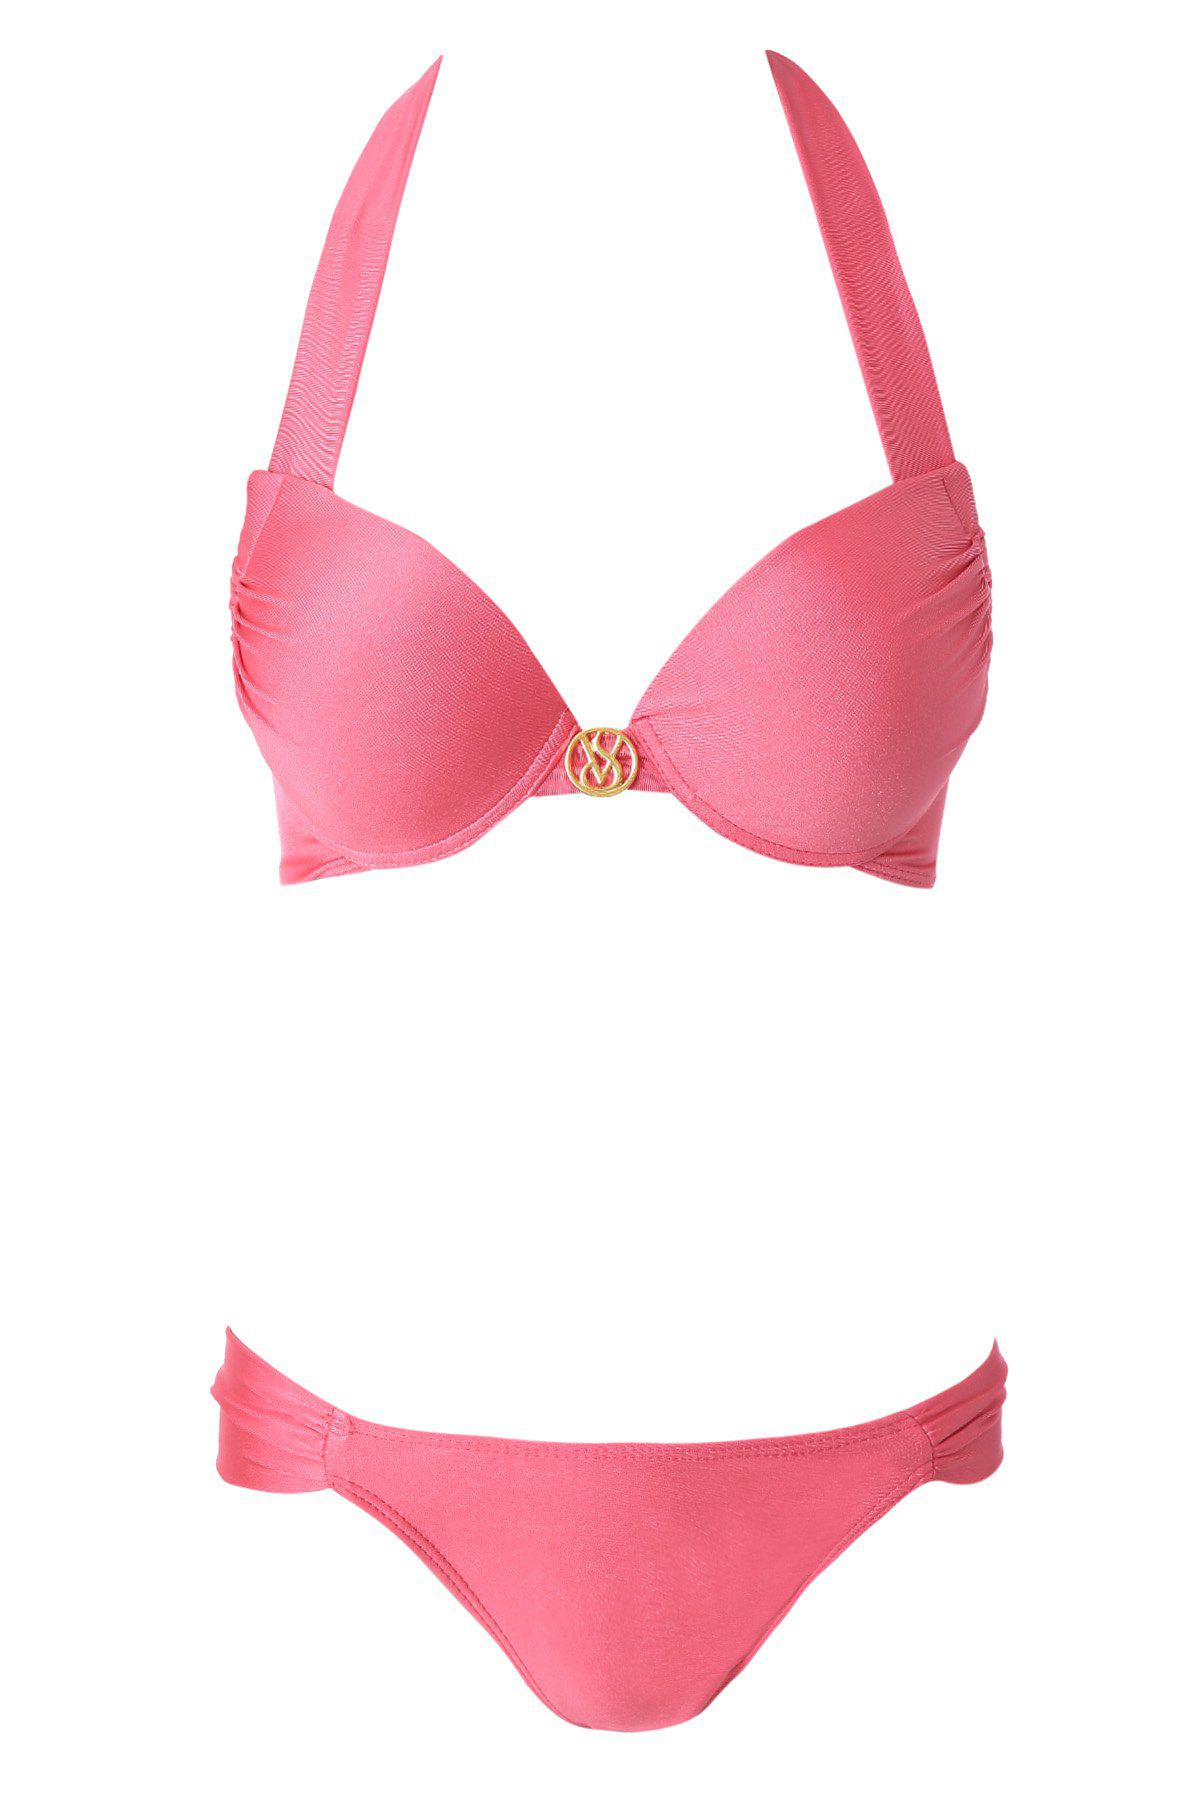 Sexy Halterneck Solid Color Push-Up Women's Bikini Set - PINK S